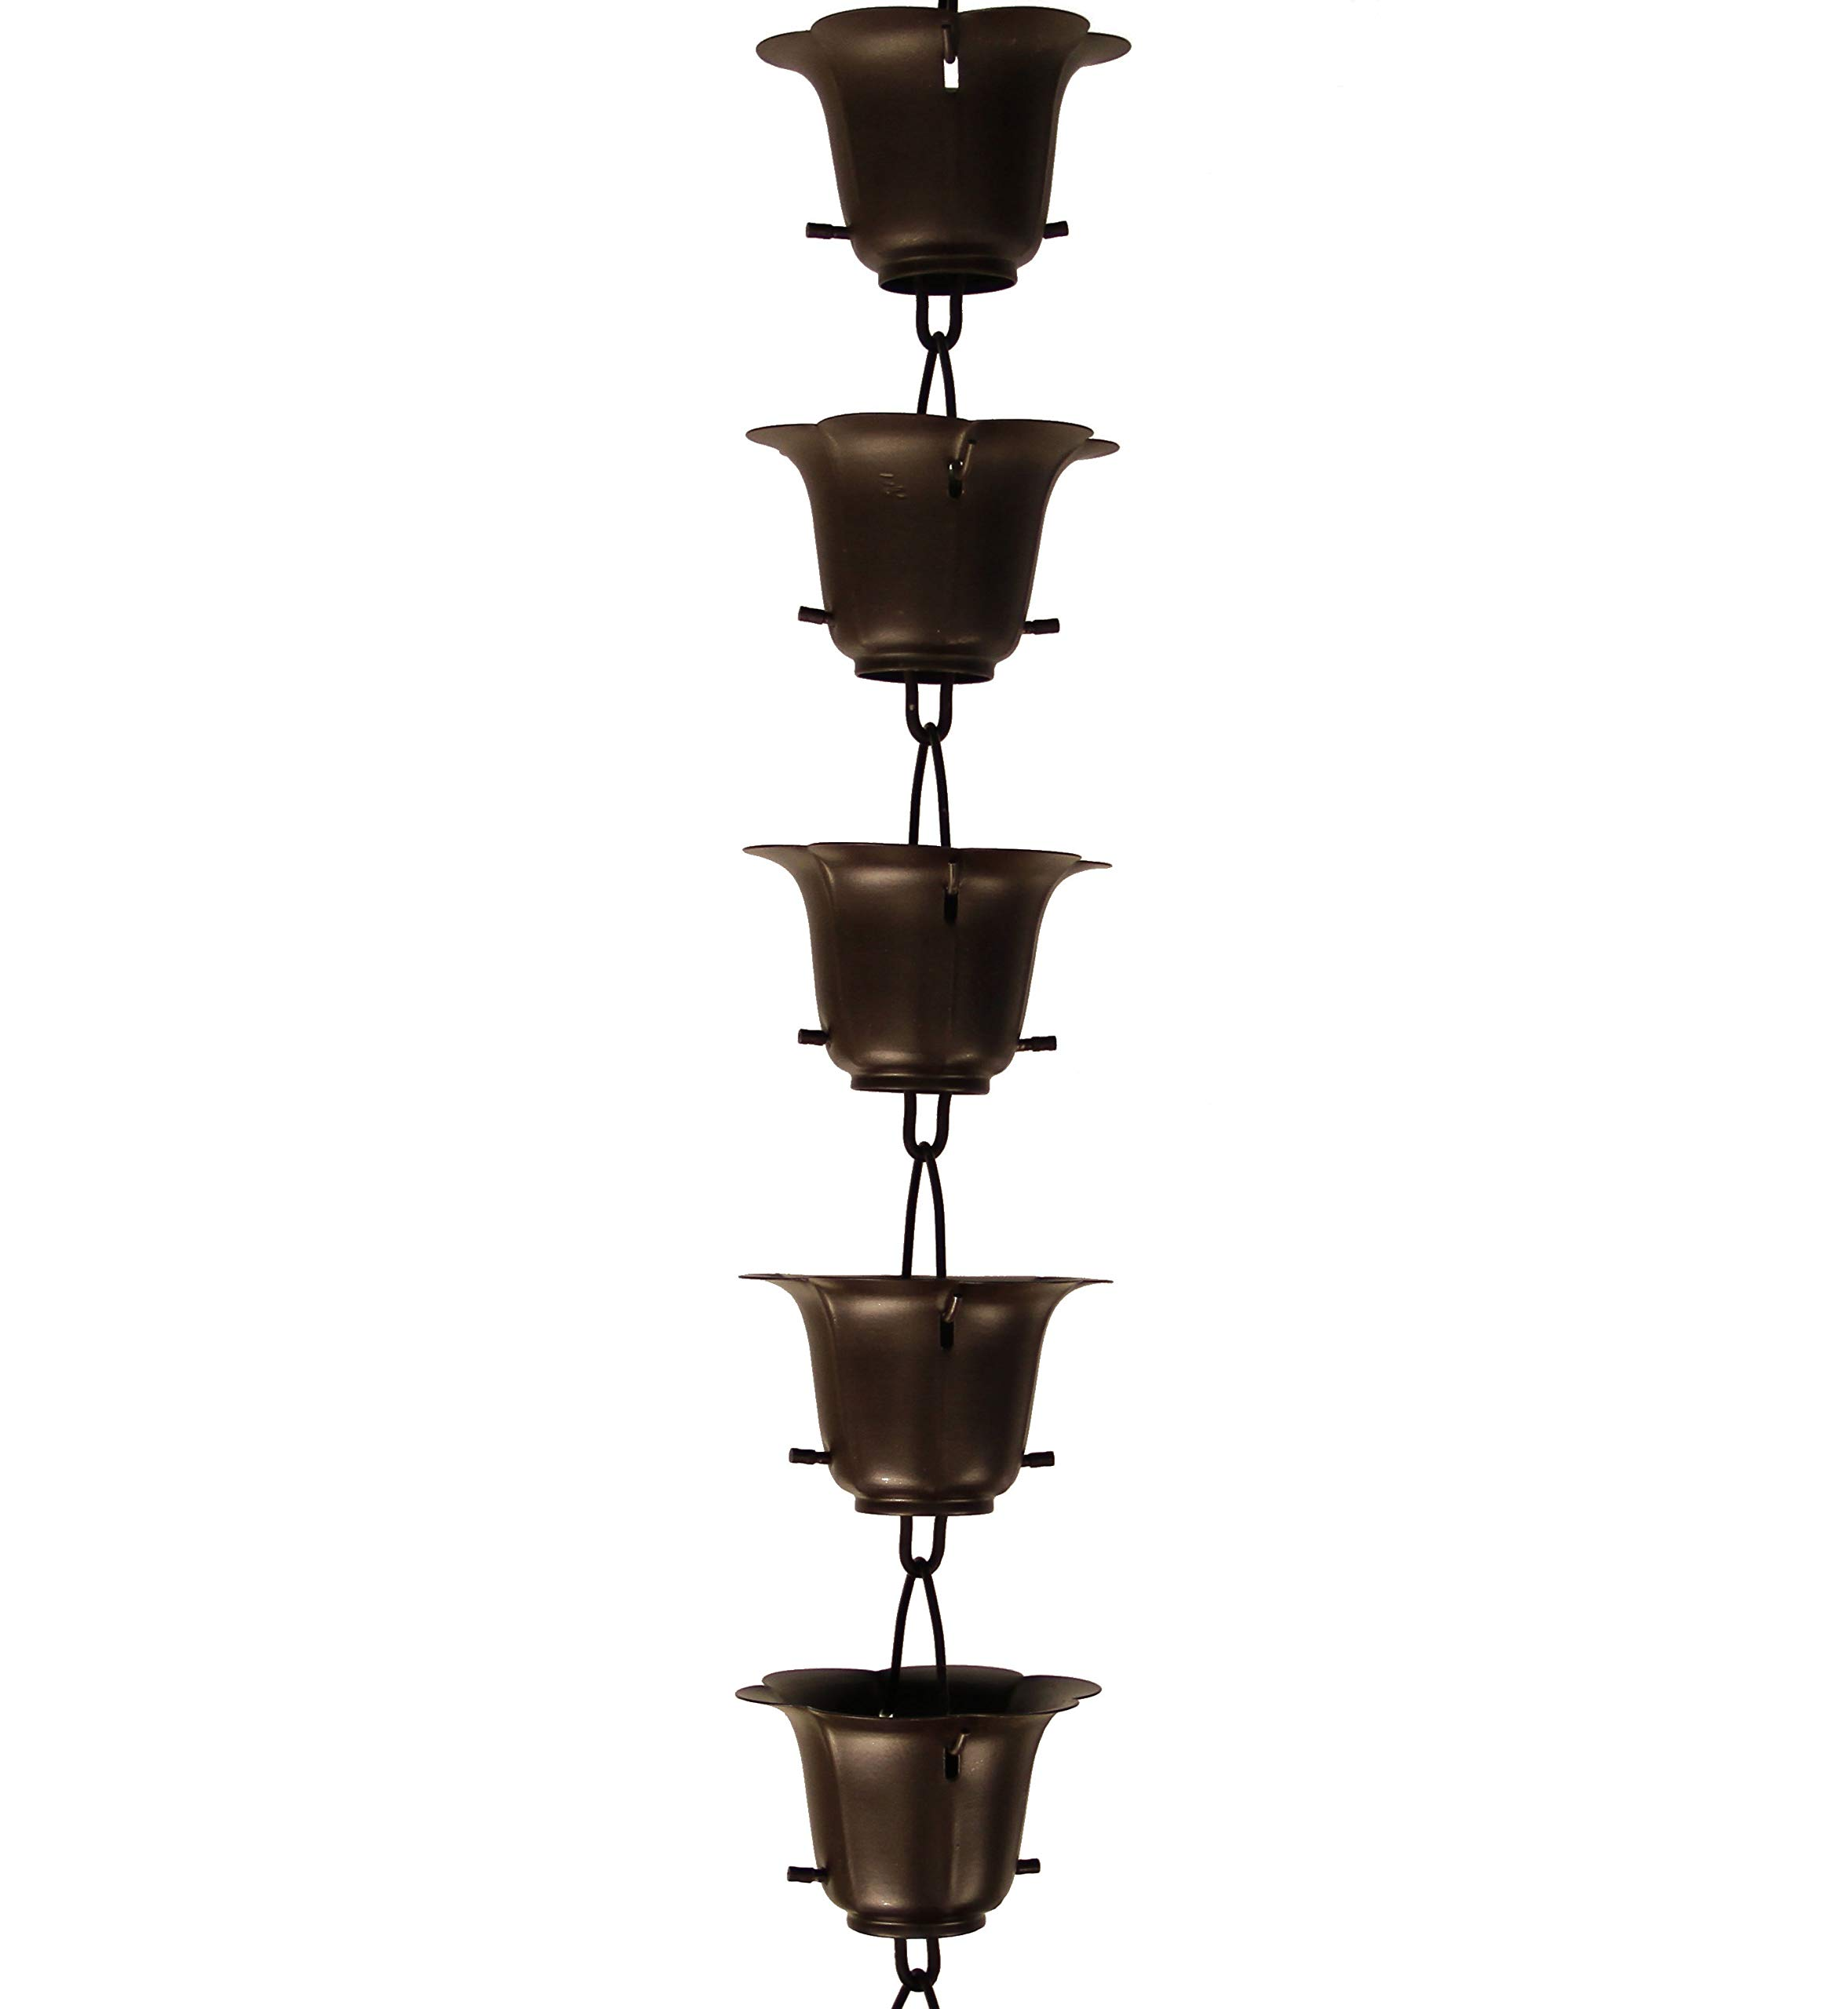 Rainchains, Inc. Bronze Iron Flower Cup RAIN Chain with Installation KIT (8 Feet)